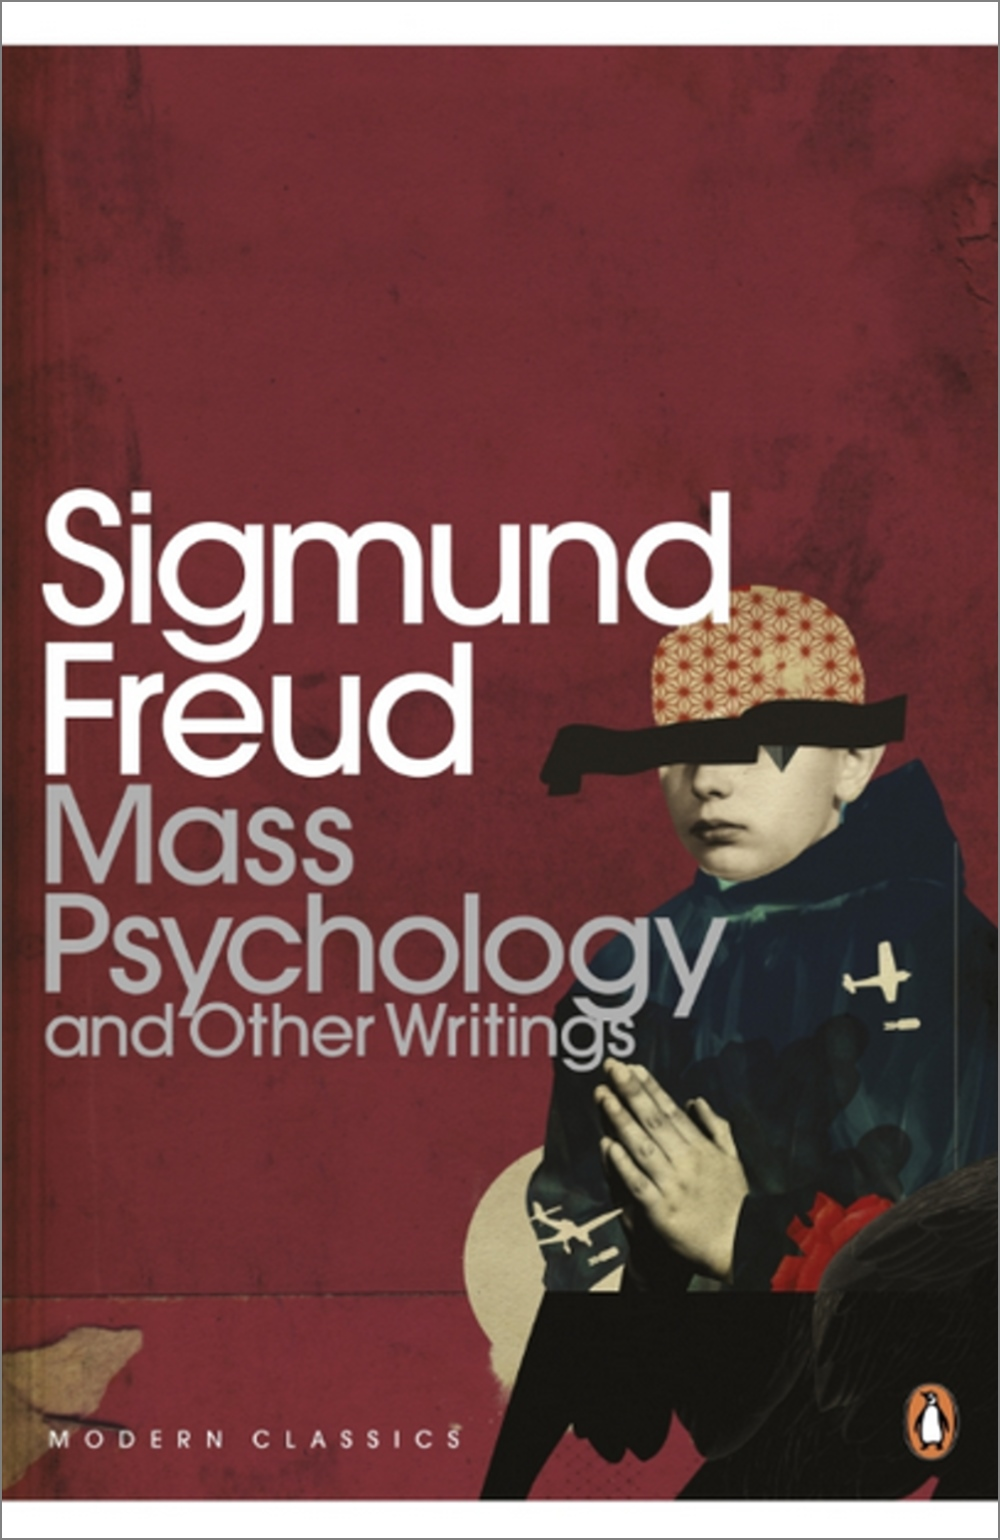 Mass Psychology: And Other Writings